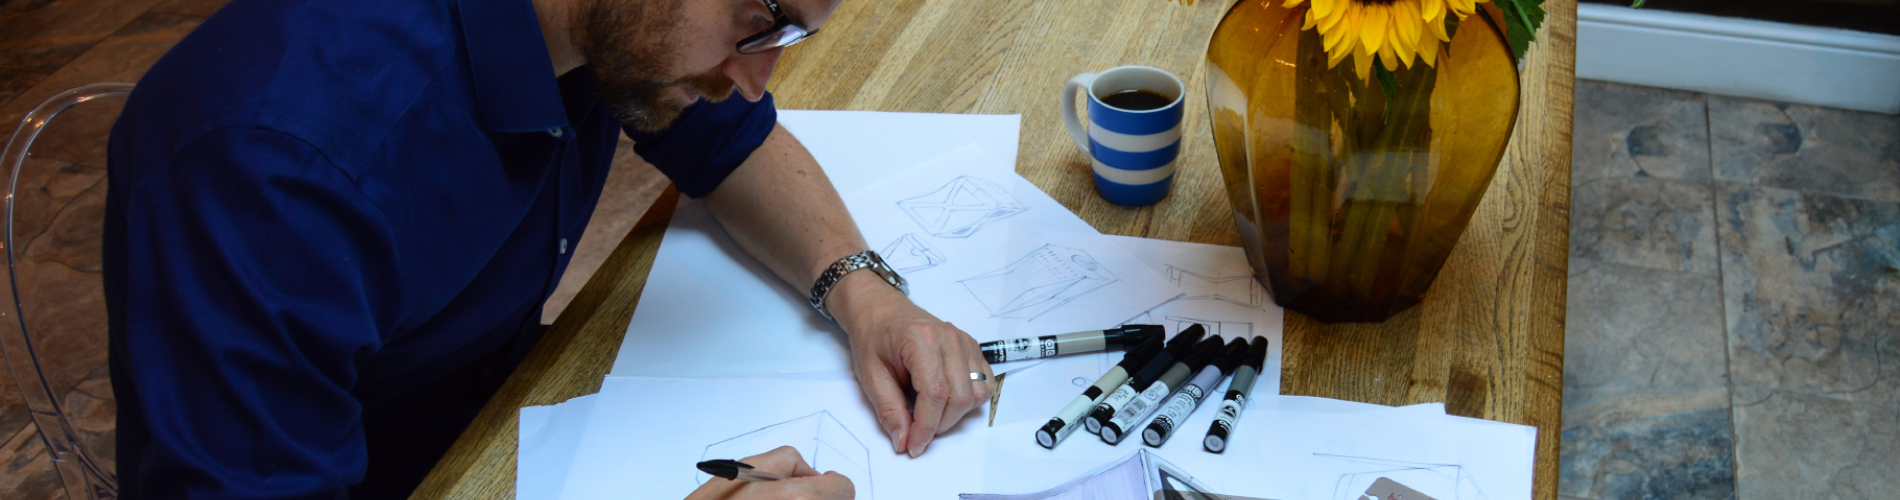 Creative product design to drive your business